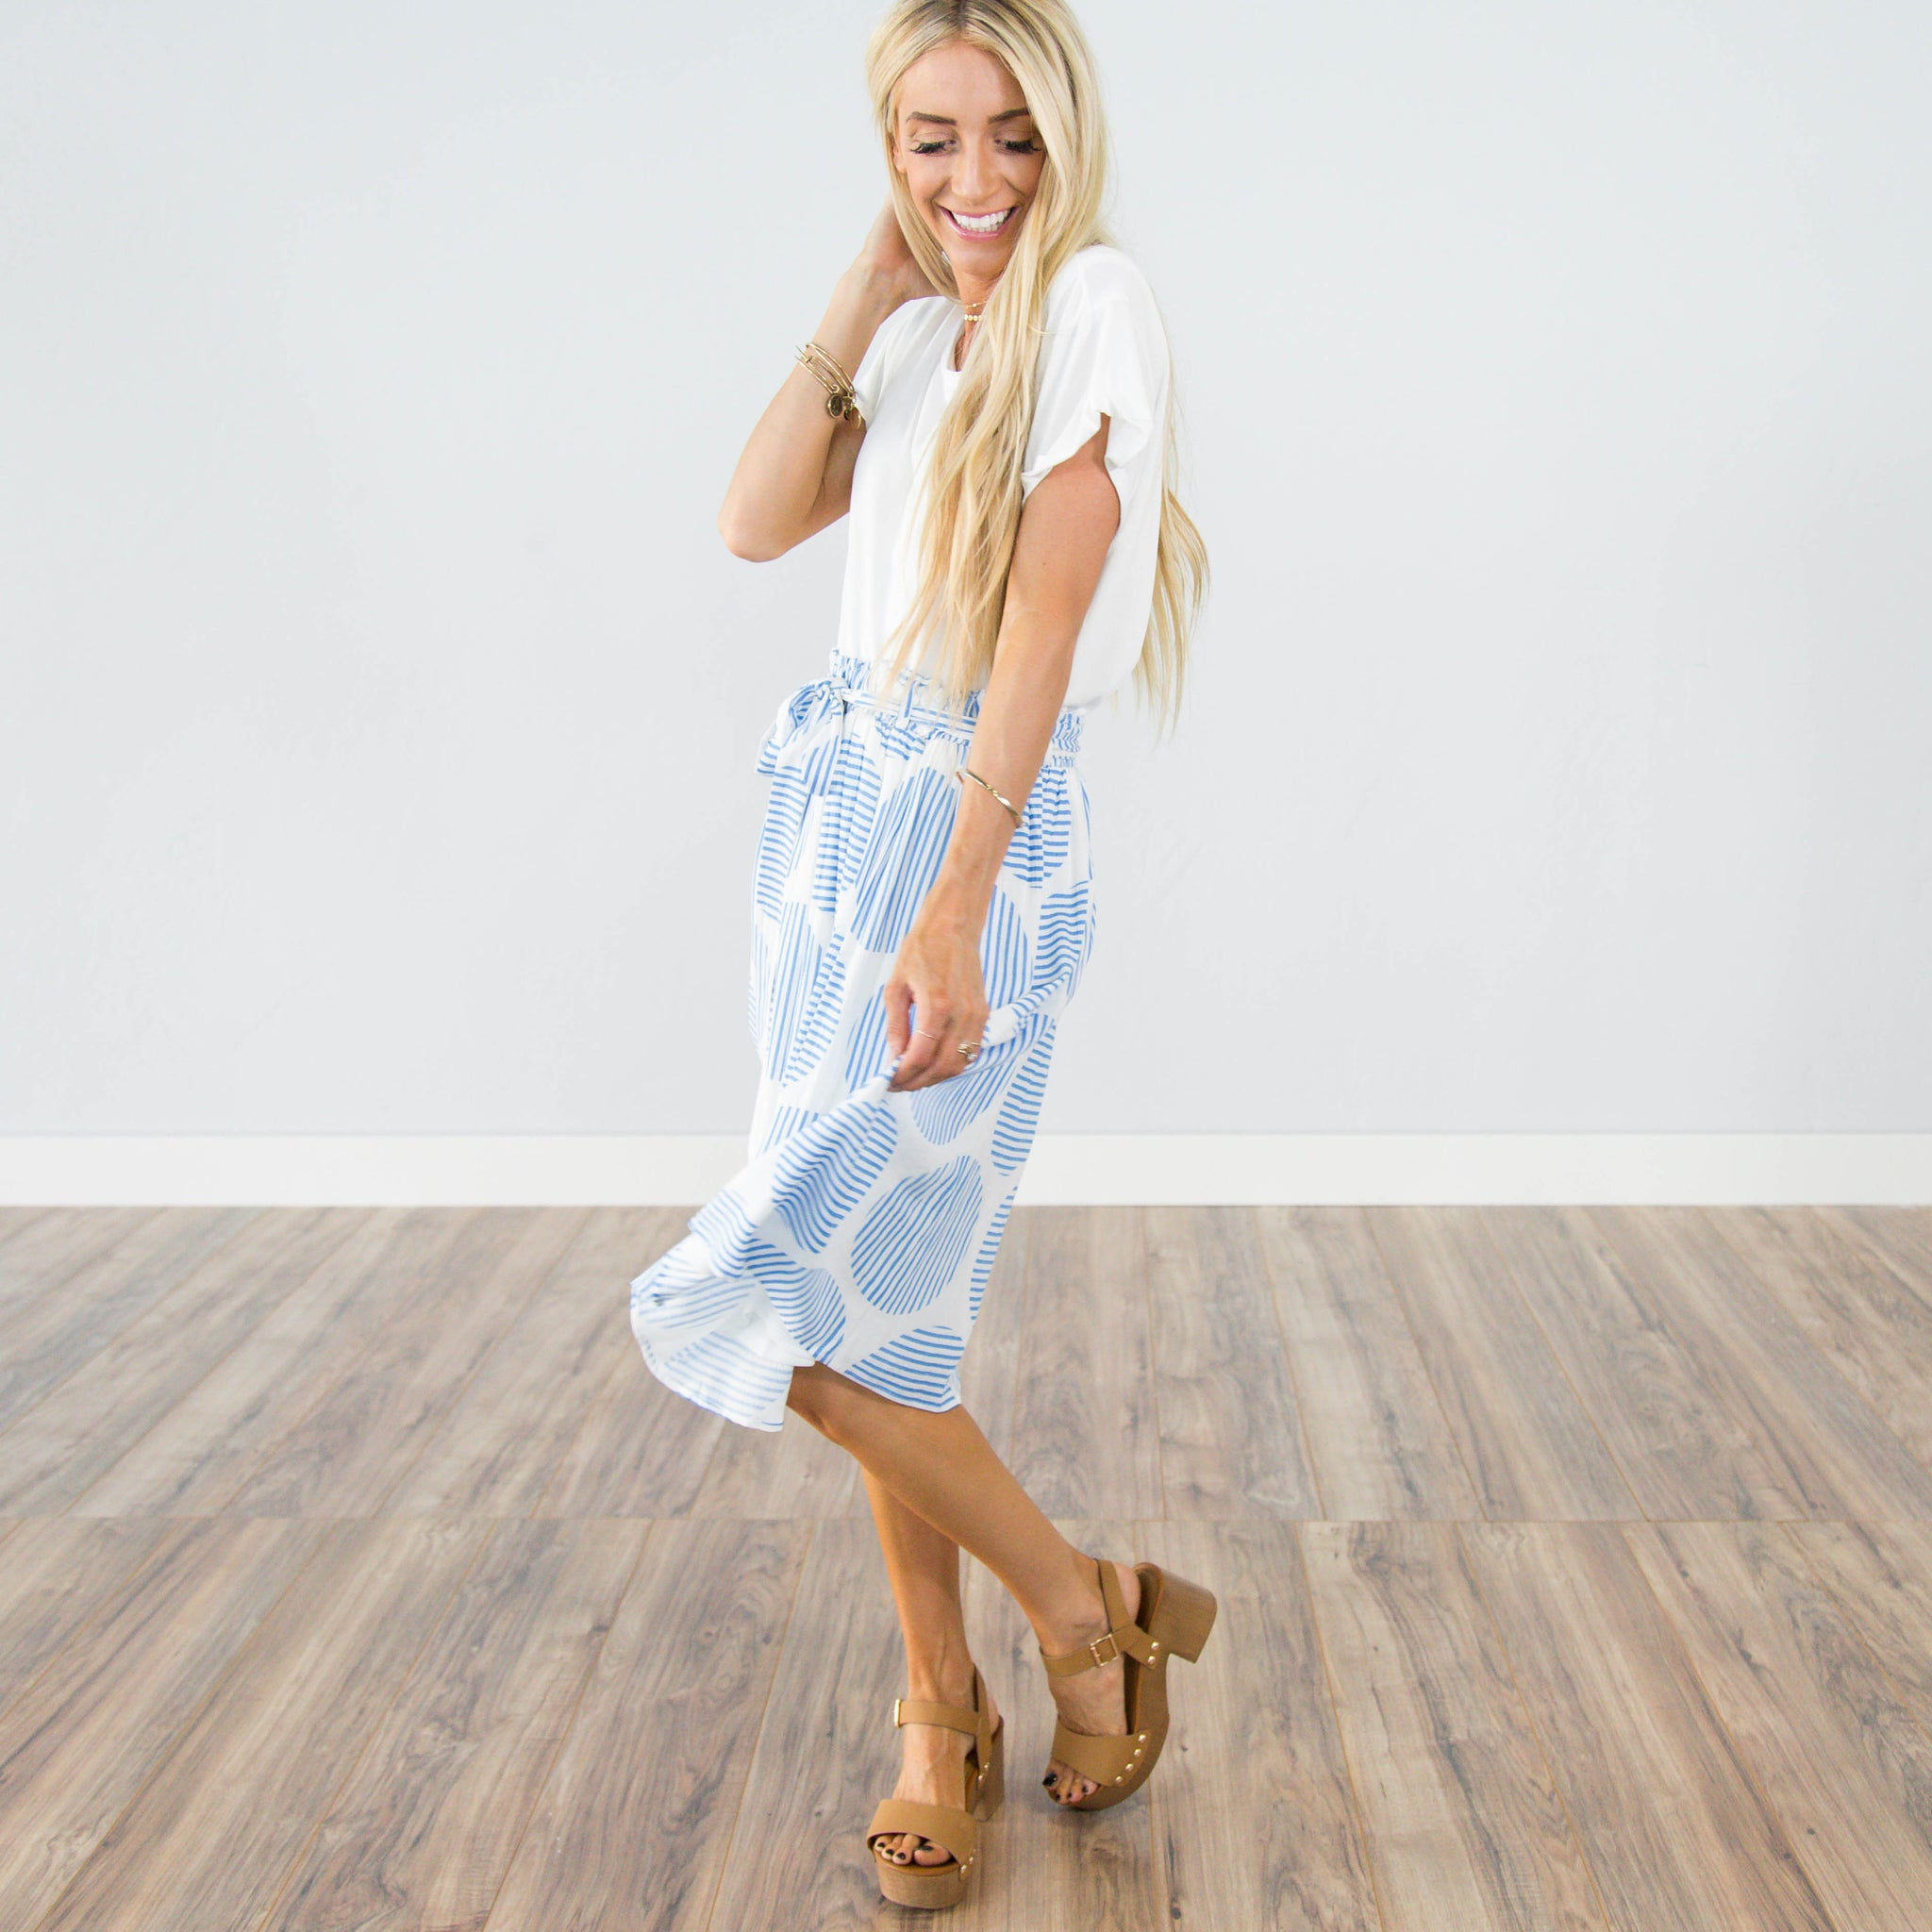 South Bay Skirt